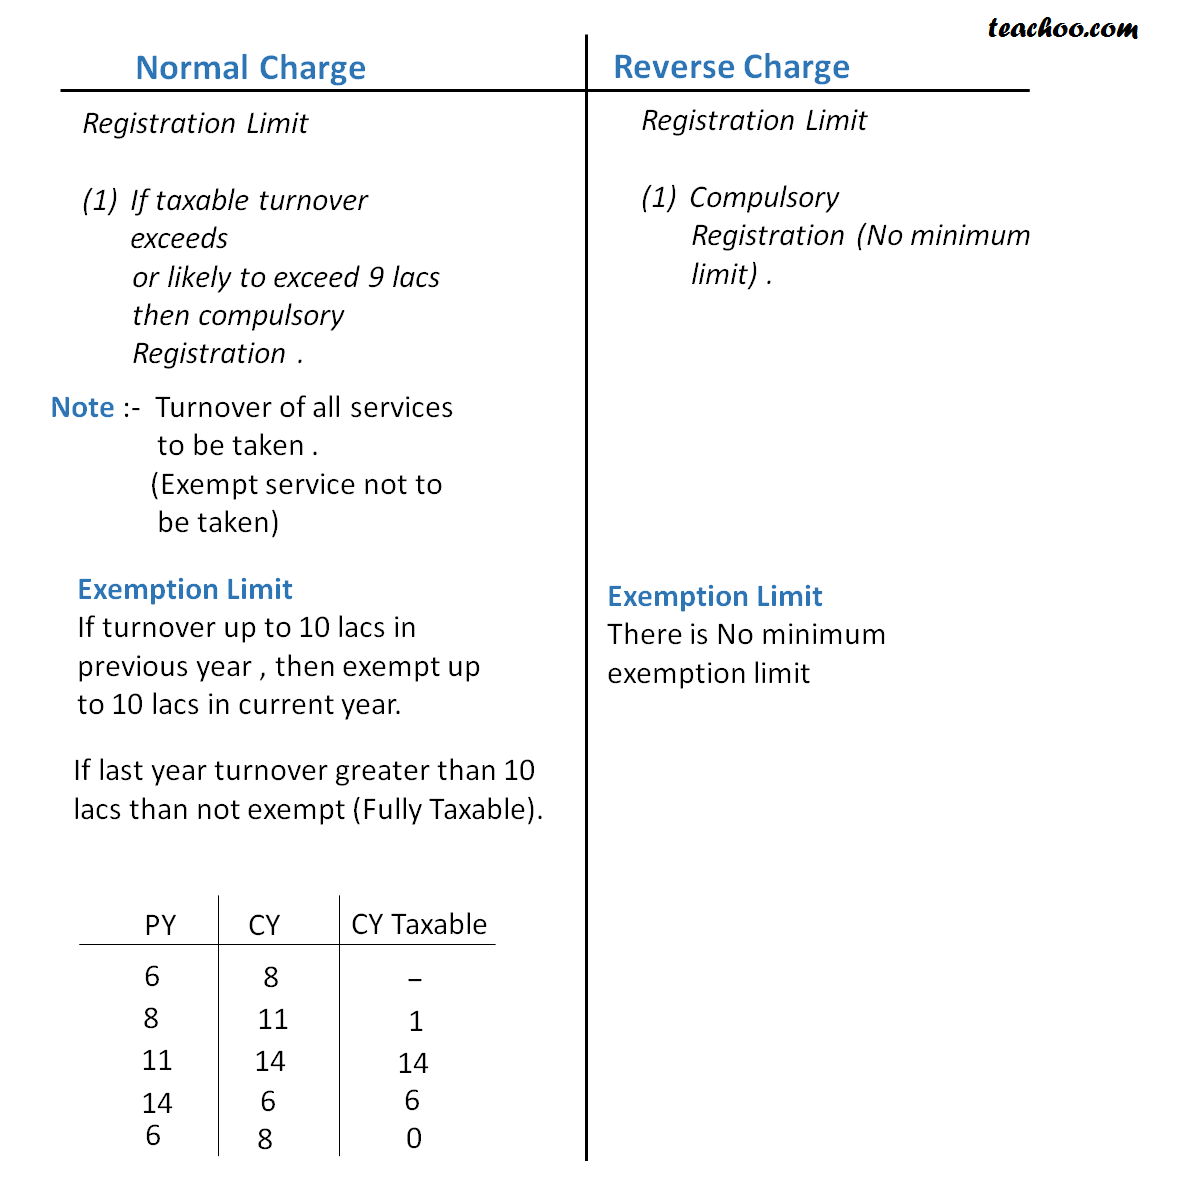 New image Normal Charge ANd Reverse charge.png